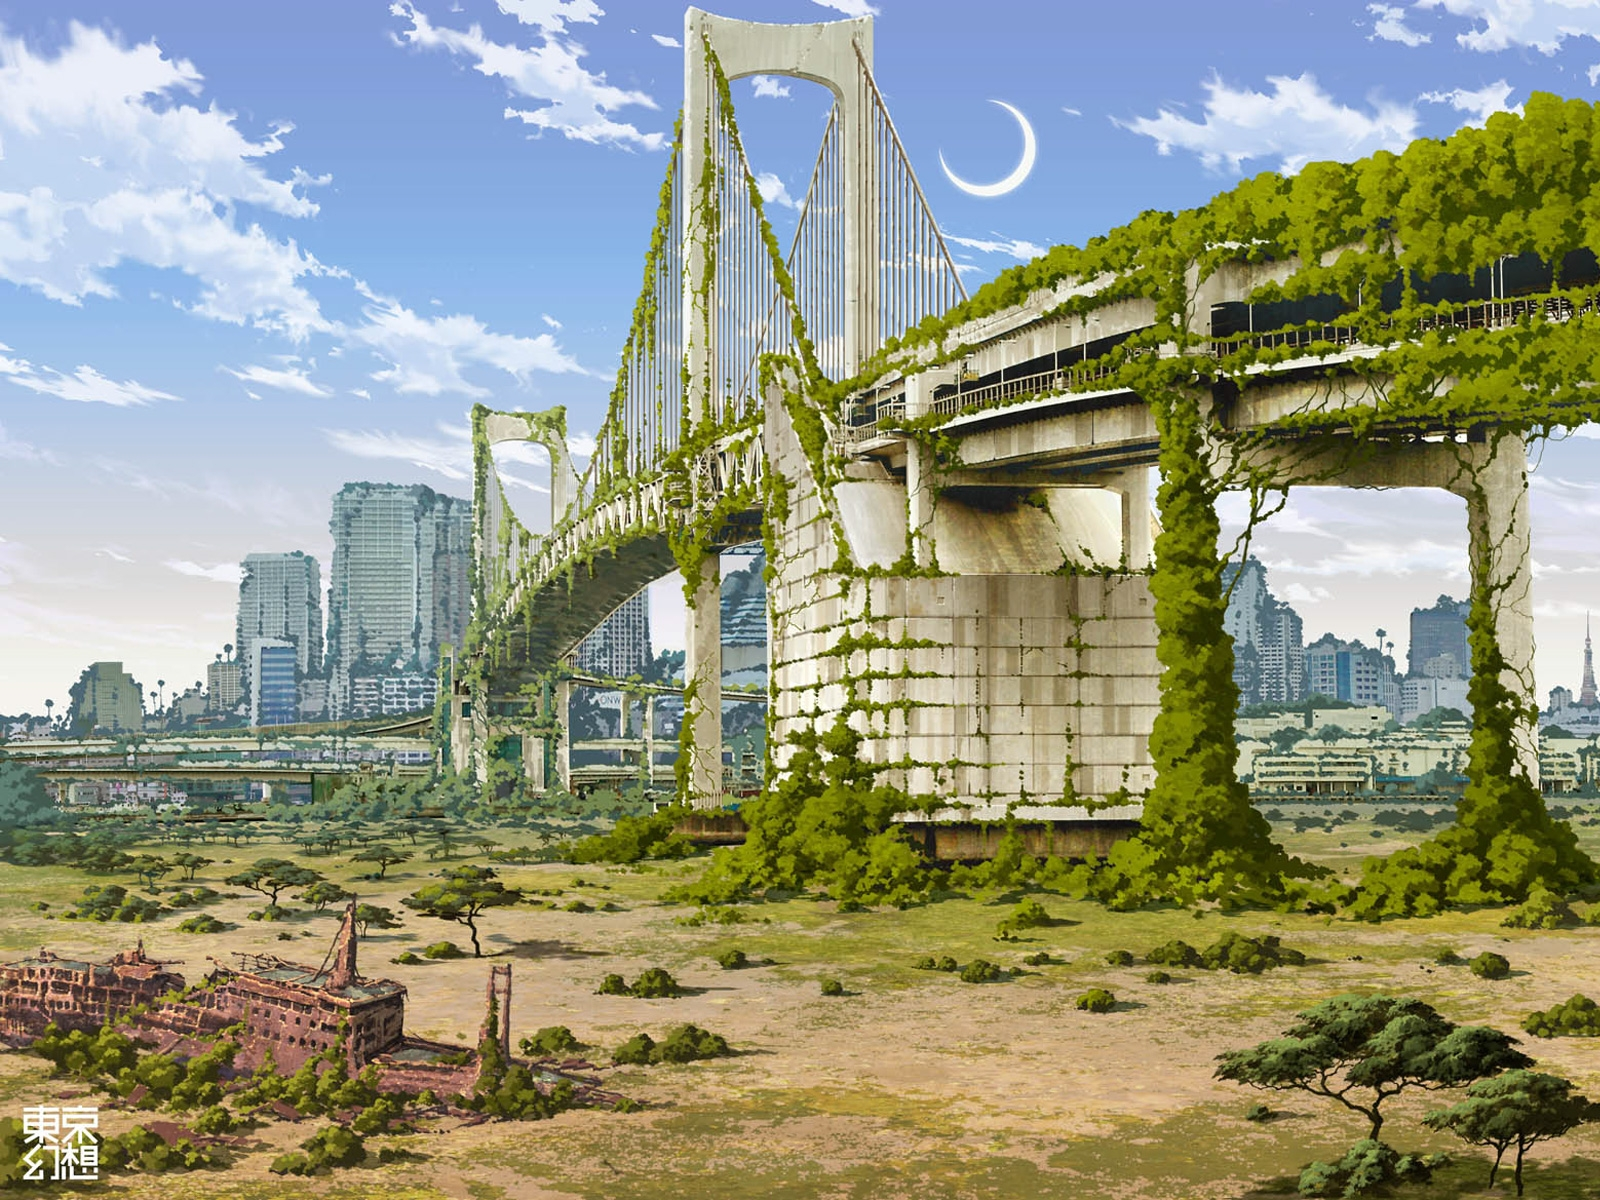 Apocalypse, Apocalyptic, Moon, Deserted, Bridge, Sky, Clouds, Skyscraper, Ruins, Scenic, Scenery, Wreck, Post Apocalyptic, Post-apocalyptic, Post-war, Wallpaper, Sunken Ship, Underwater World